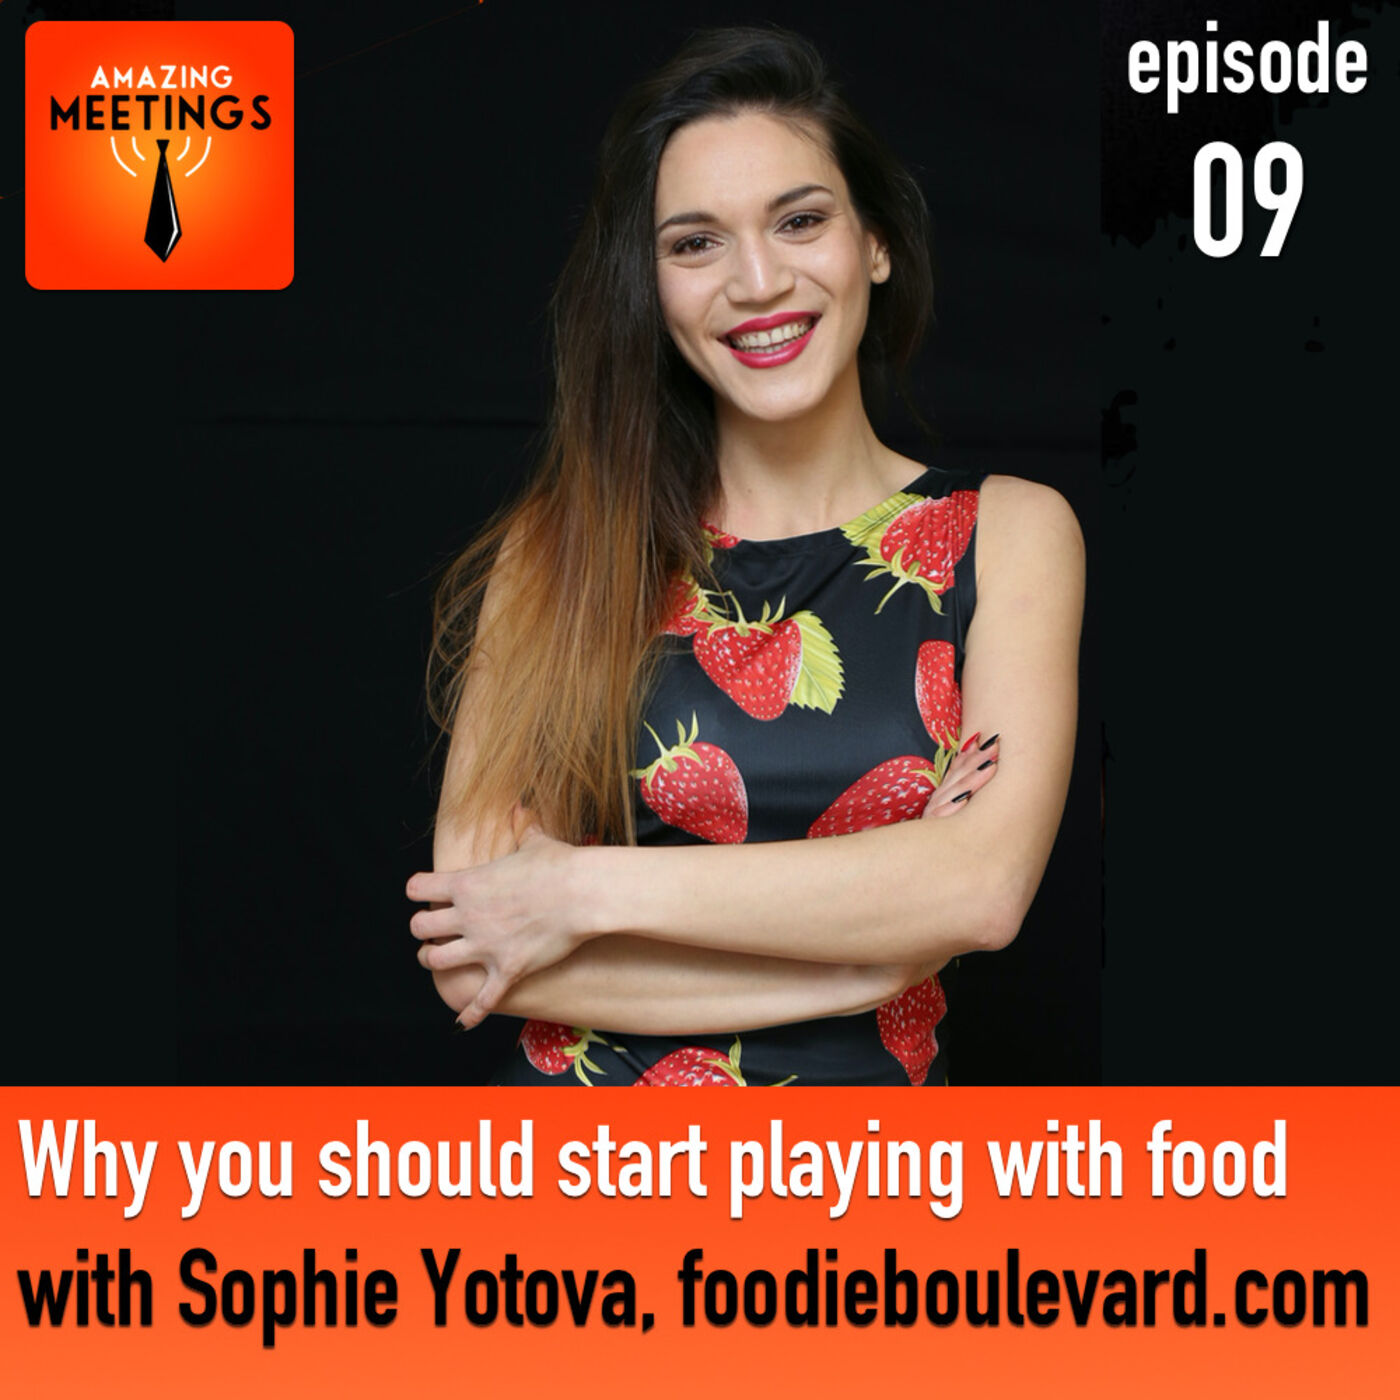 Why you should start playing with your food with Sophie Yotova